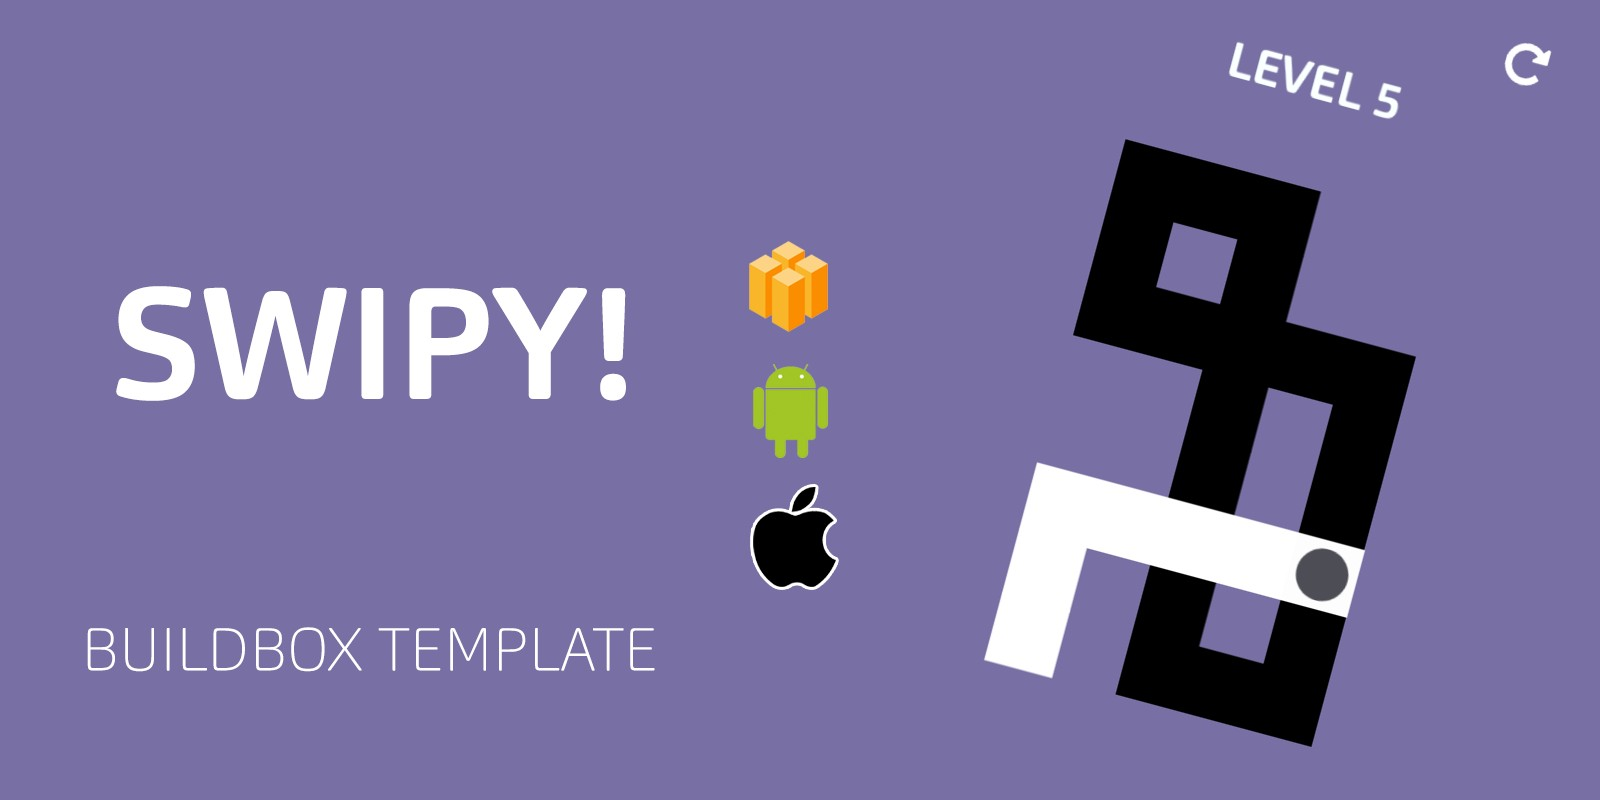 Swipy Buildbox Template